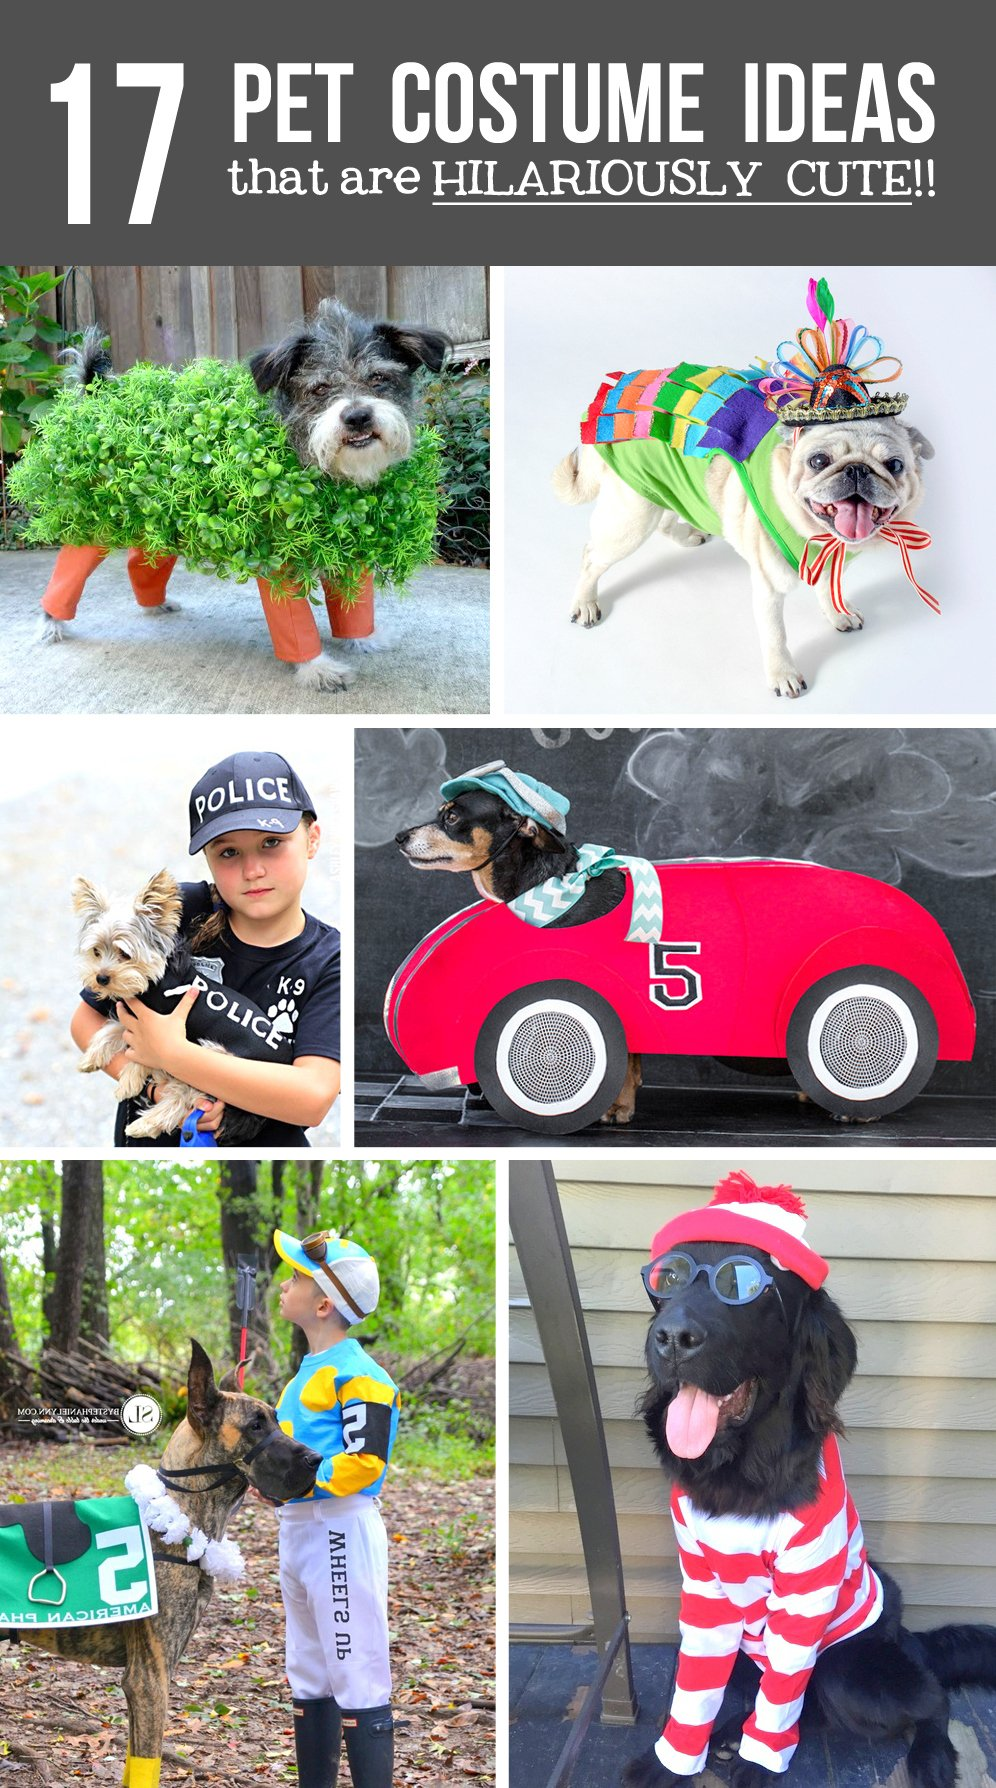 17 diy pet costume ideasthat are hilariously cute